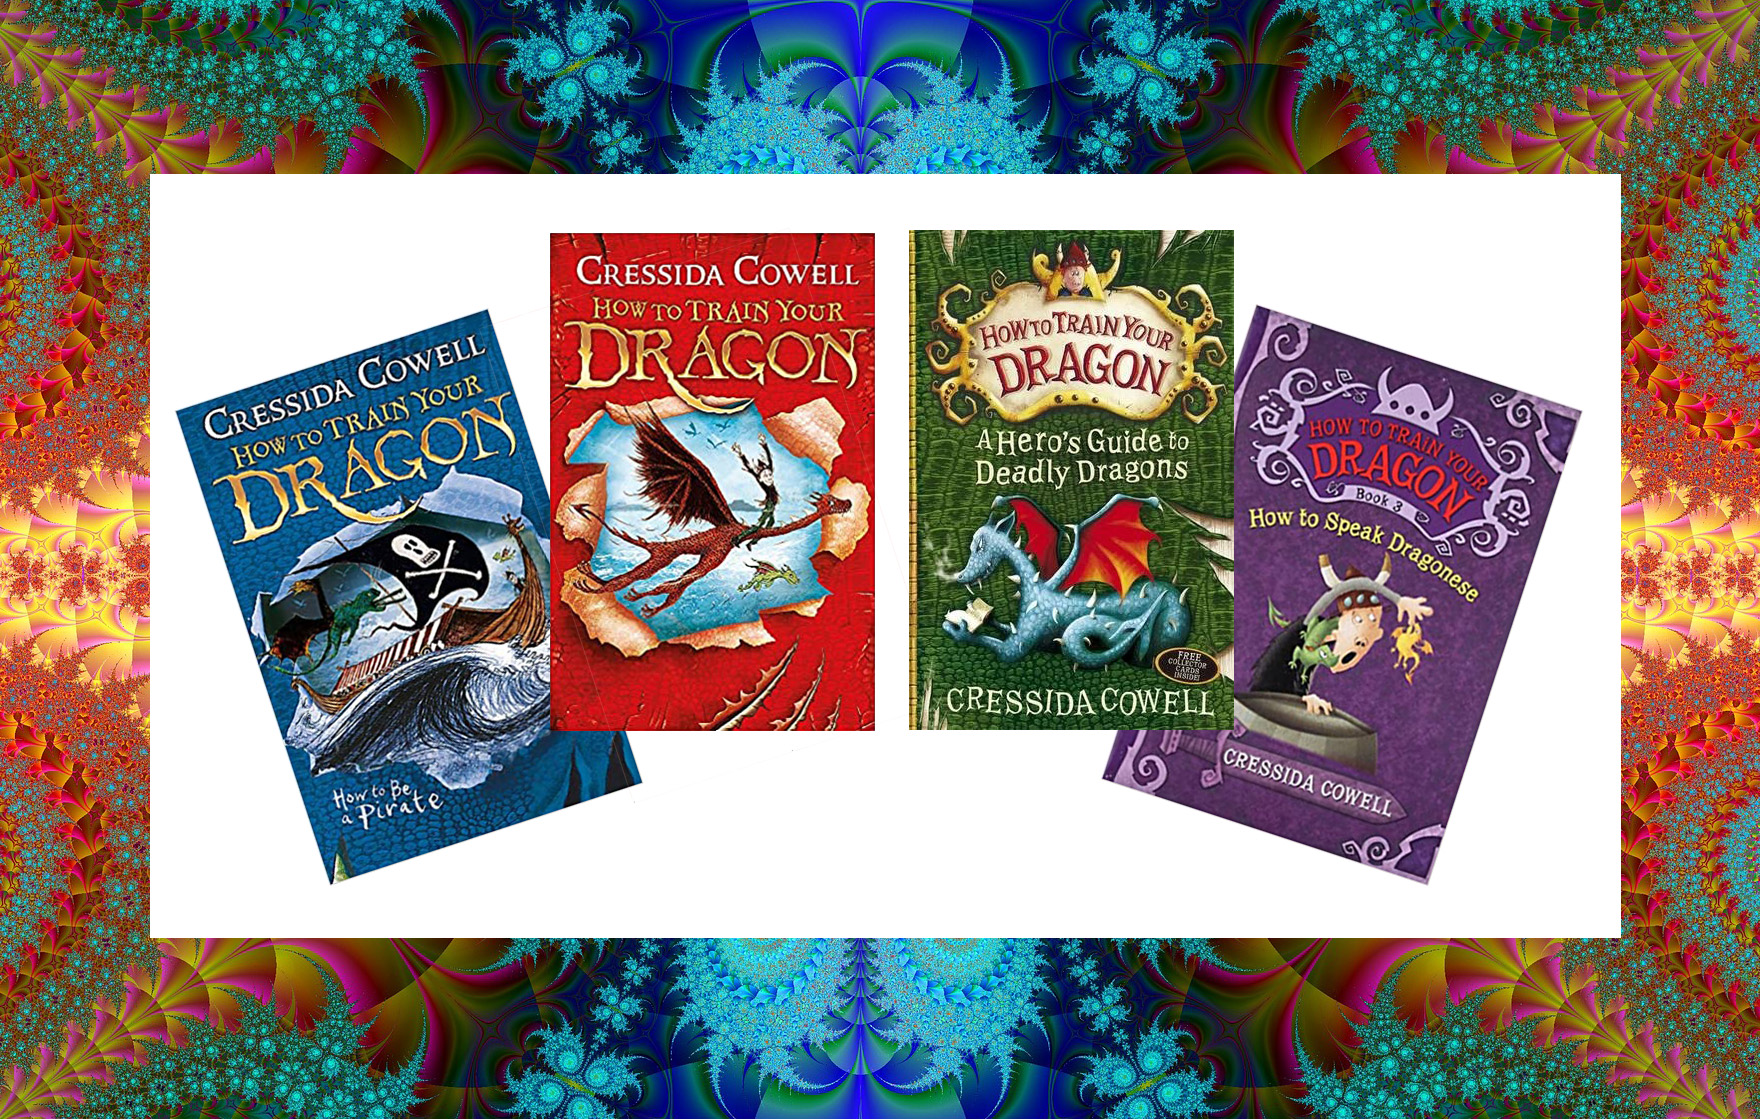 Image shows How to Train Your Dragon - book covers